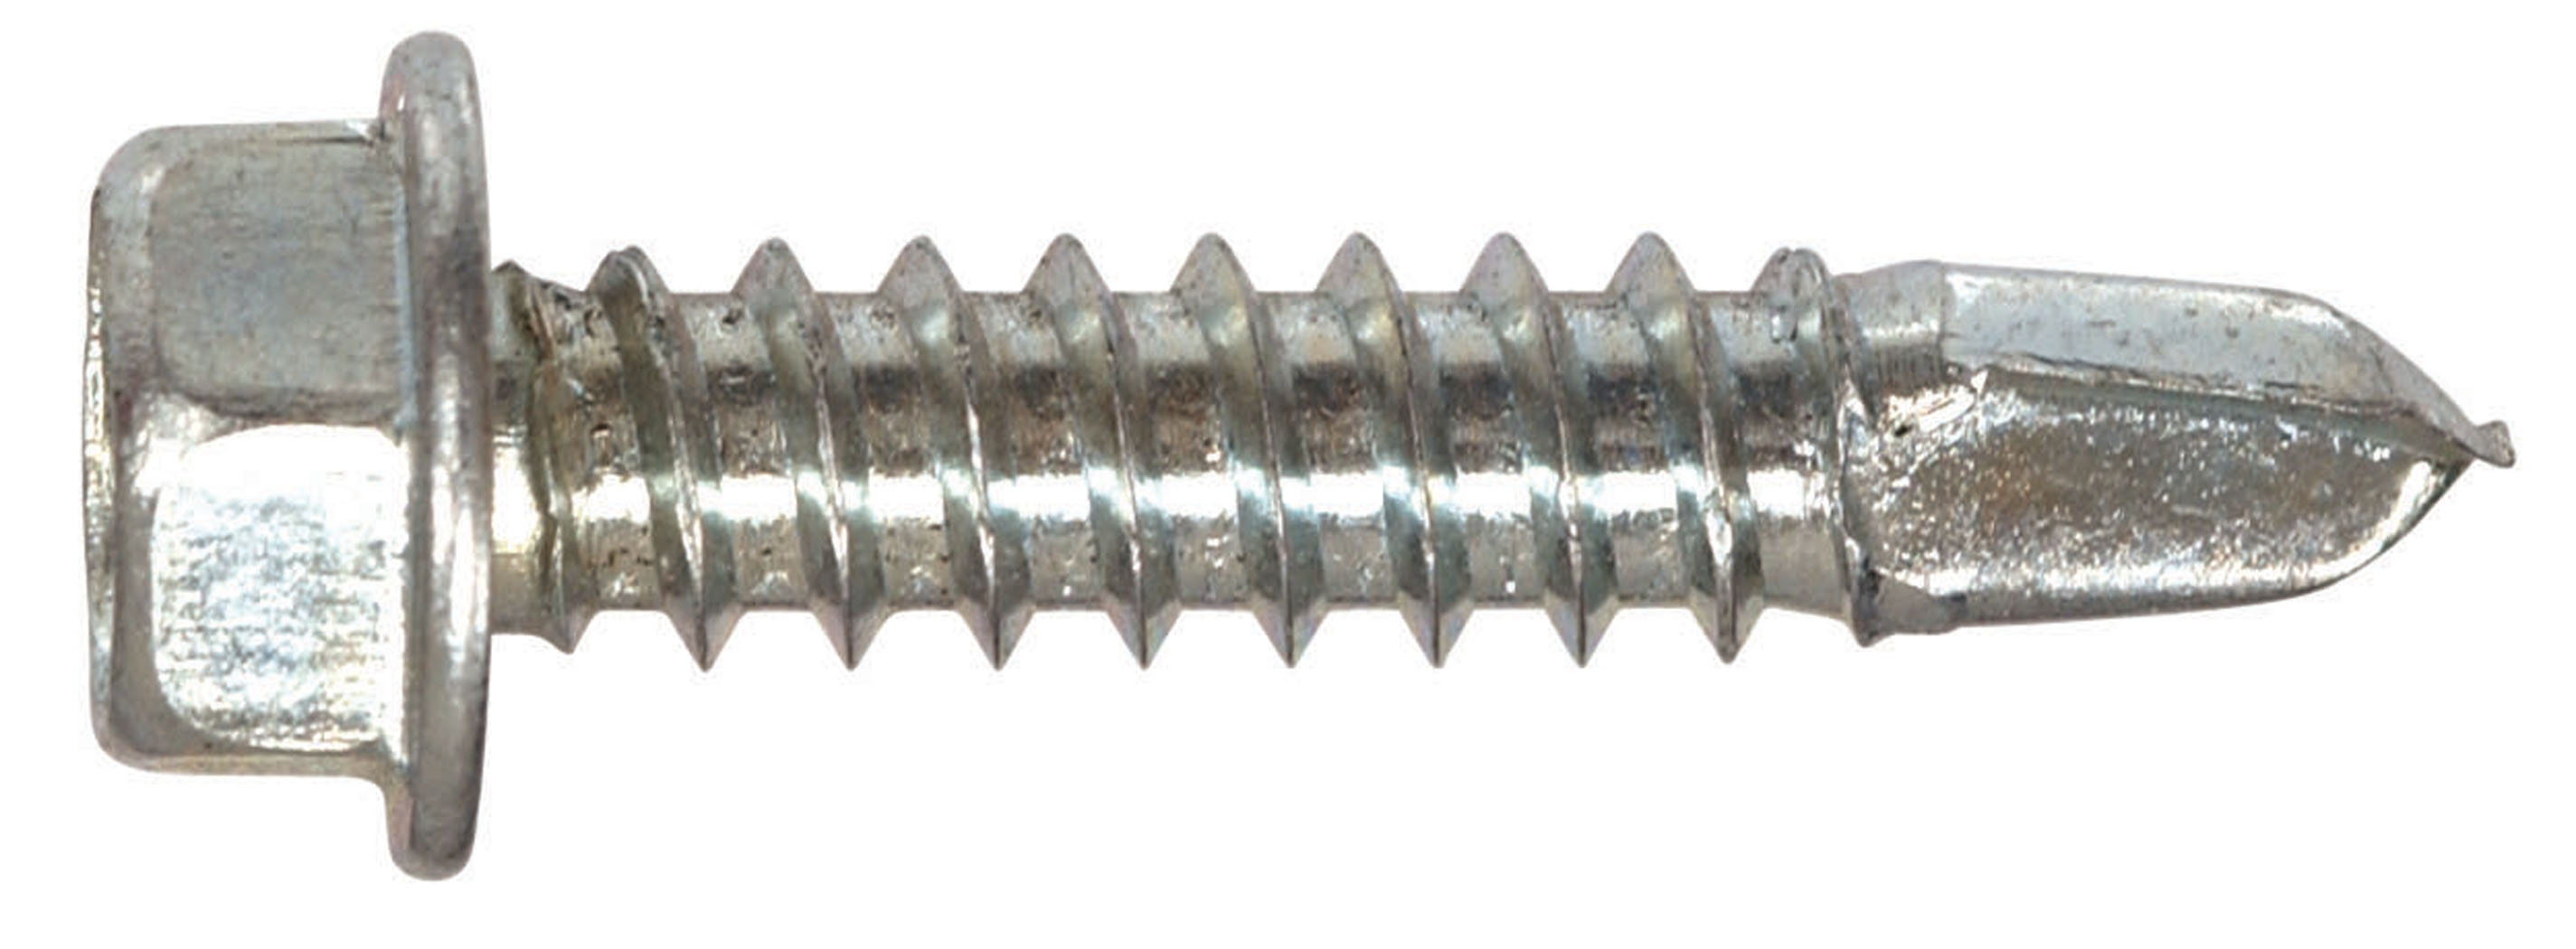 The Hillman Group 47211 10-16 x 1//2-Inch Hex Washer Head Self Drilling Screw